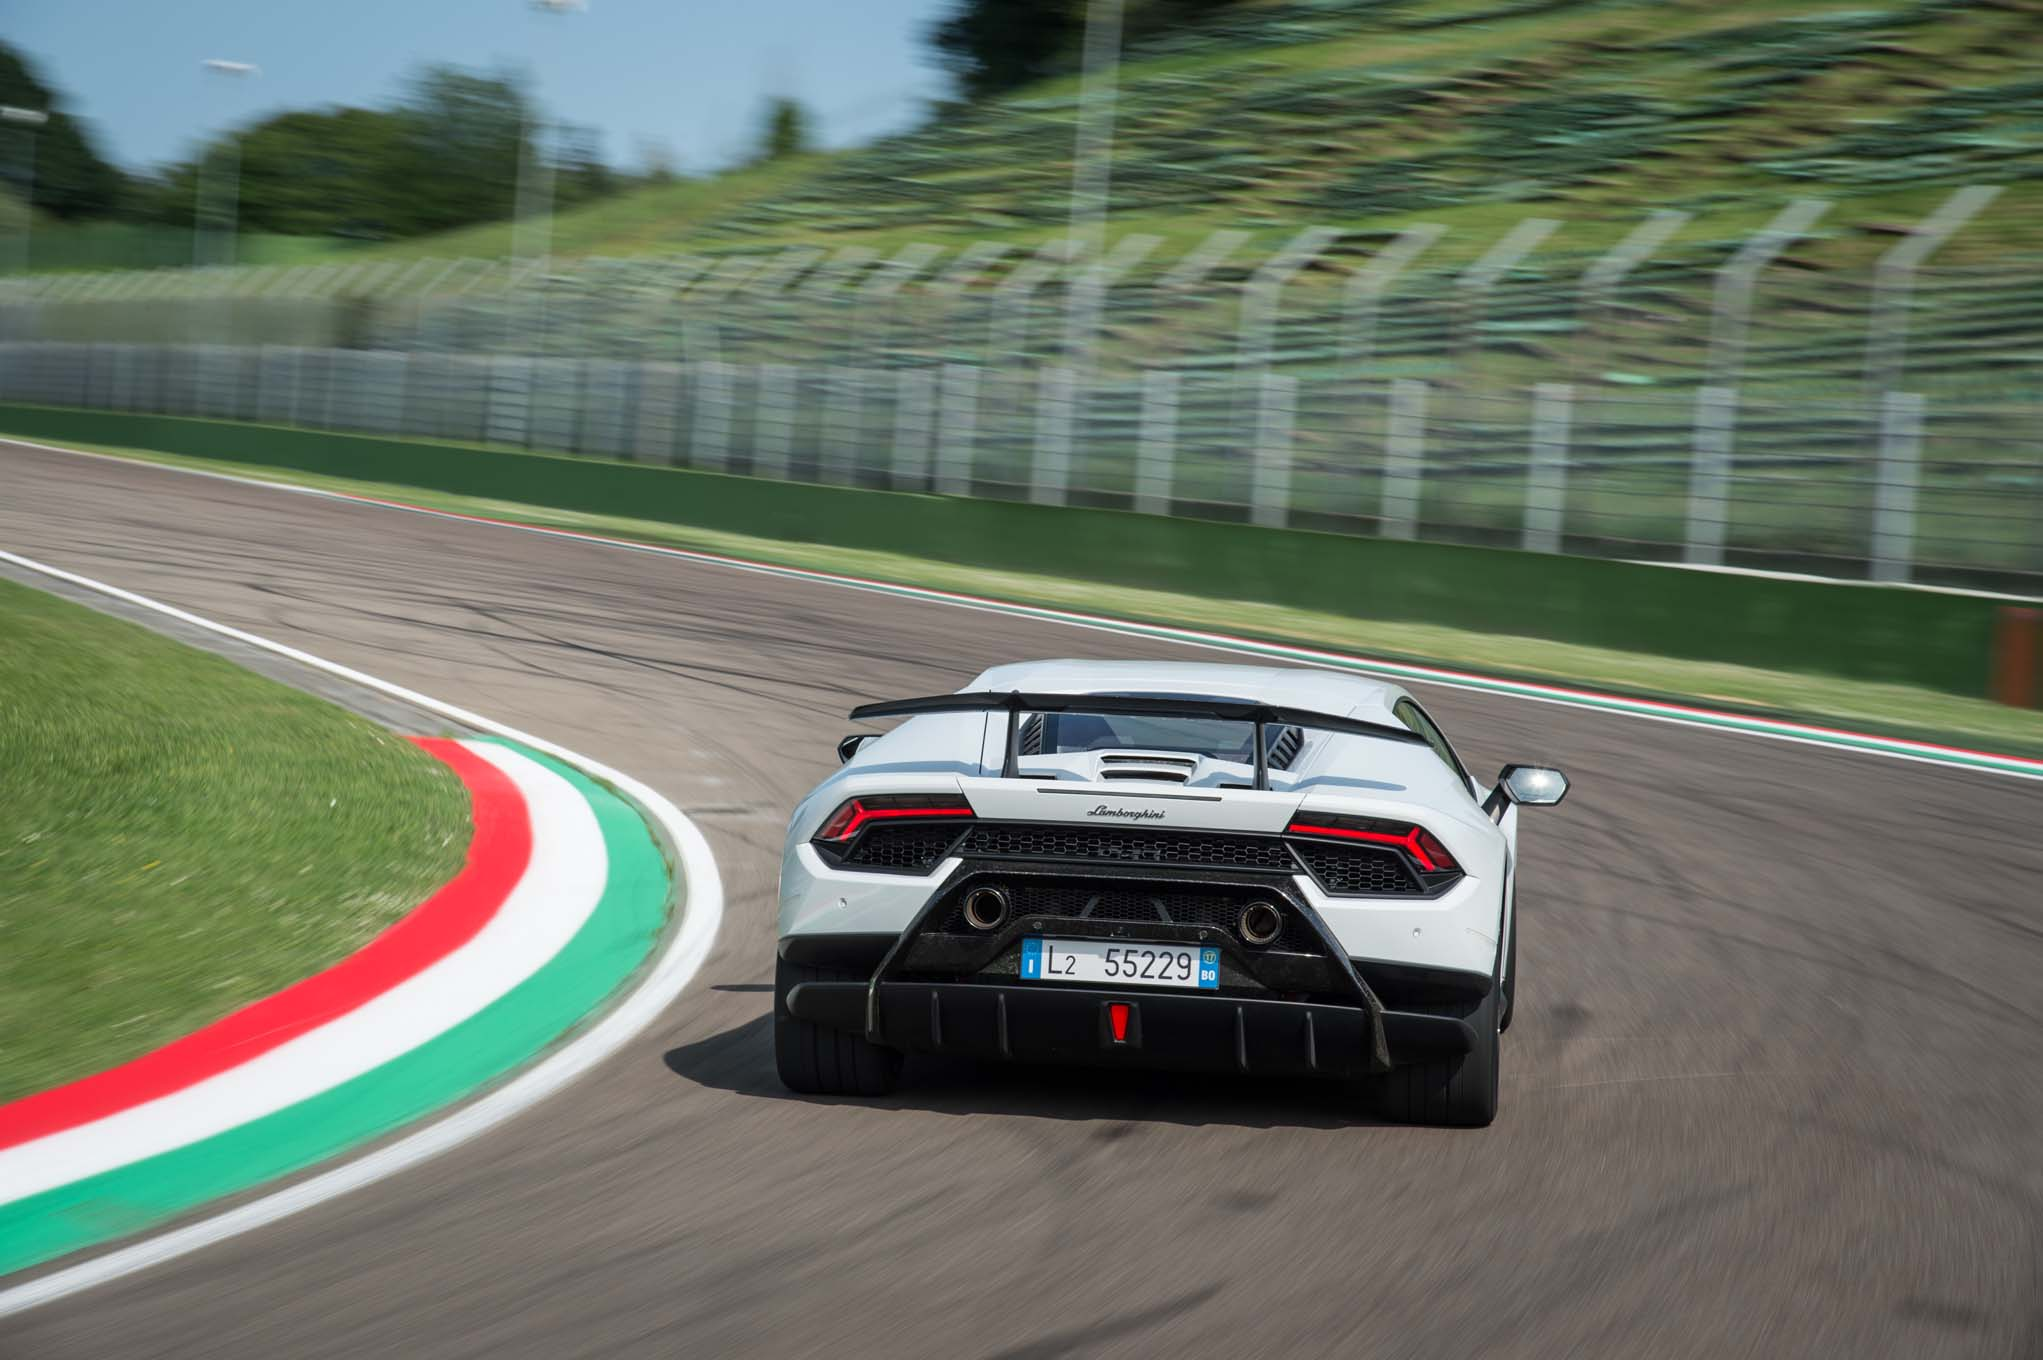 2018-Lamborghini-Huracan-Performante-rear-end-in-motion-02 Stunning Lamborghini Huracan Price Real Racing 3 Cars Trend